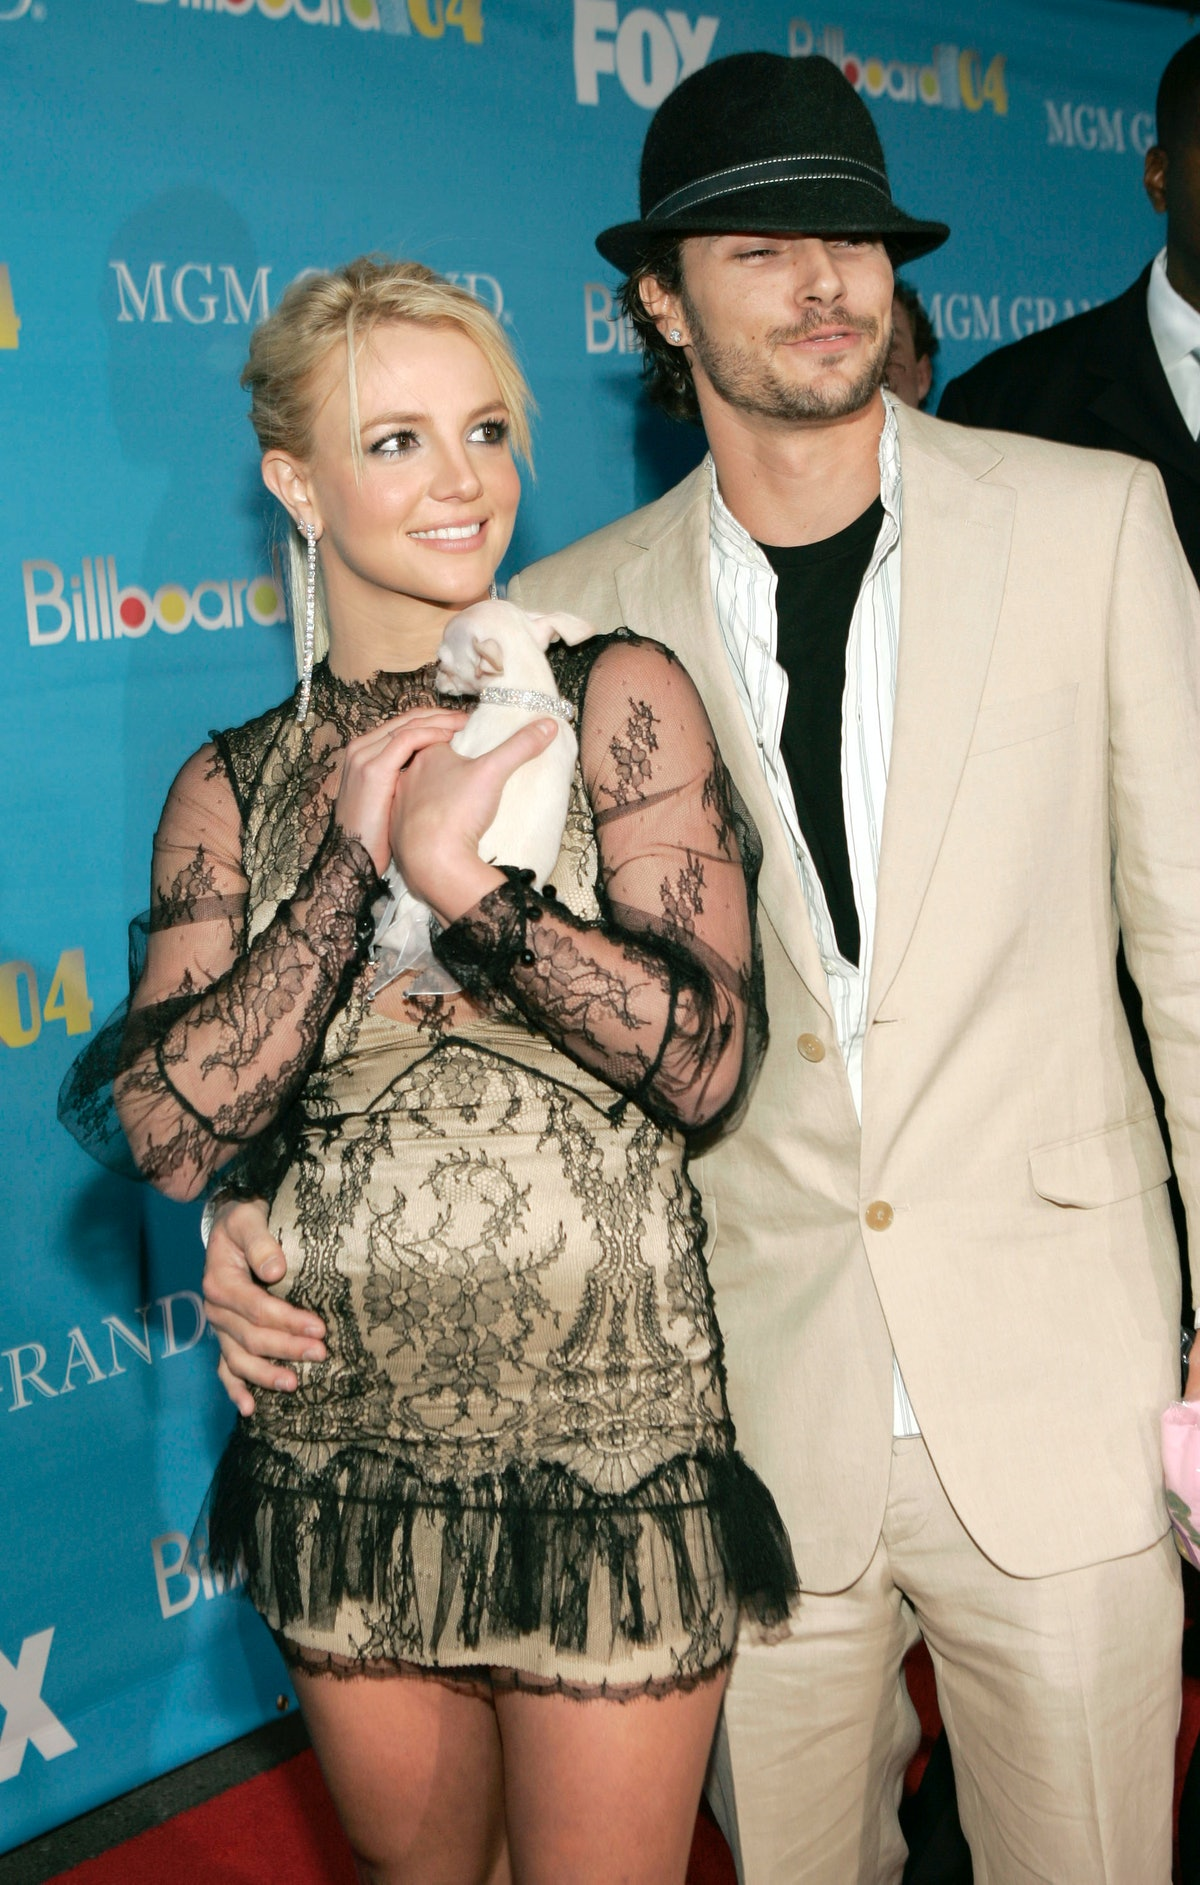 Britney Spears and Kevin Federline at the MGM Grand Garden in Las Vegas, Nevada (Photo by Kevin Mazu...